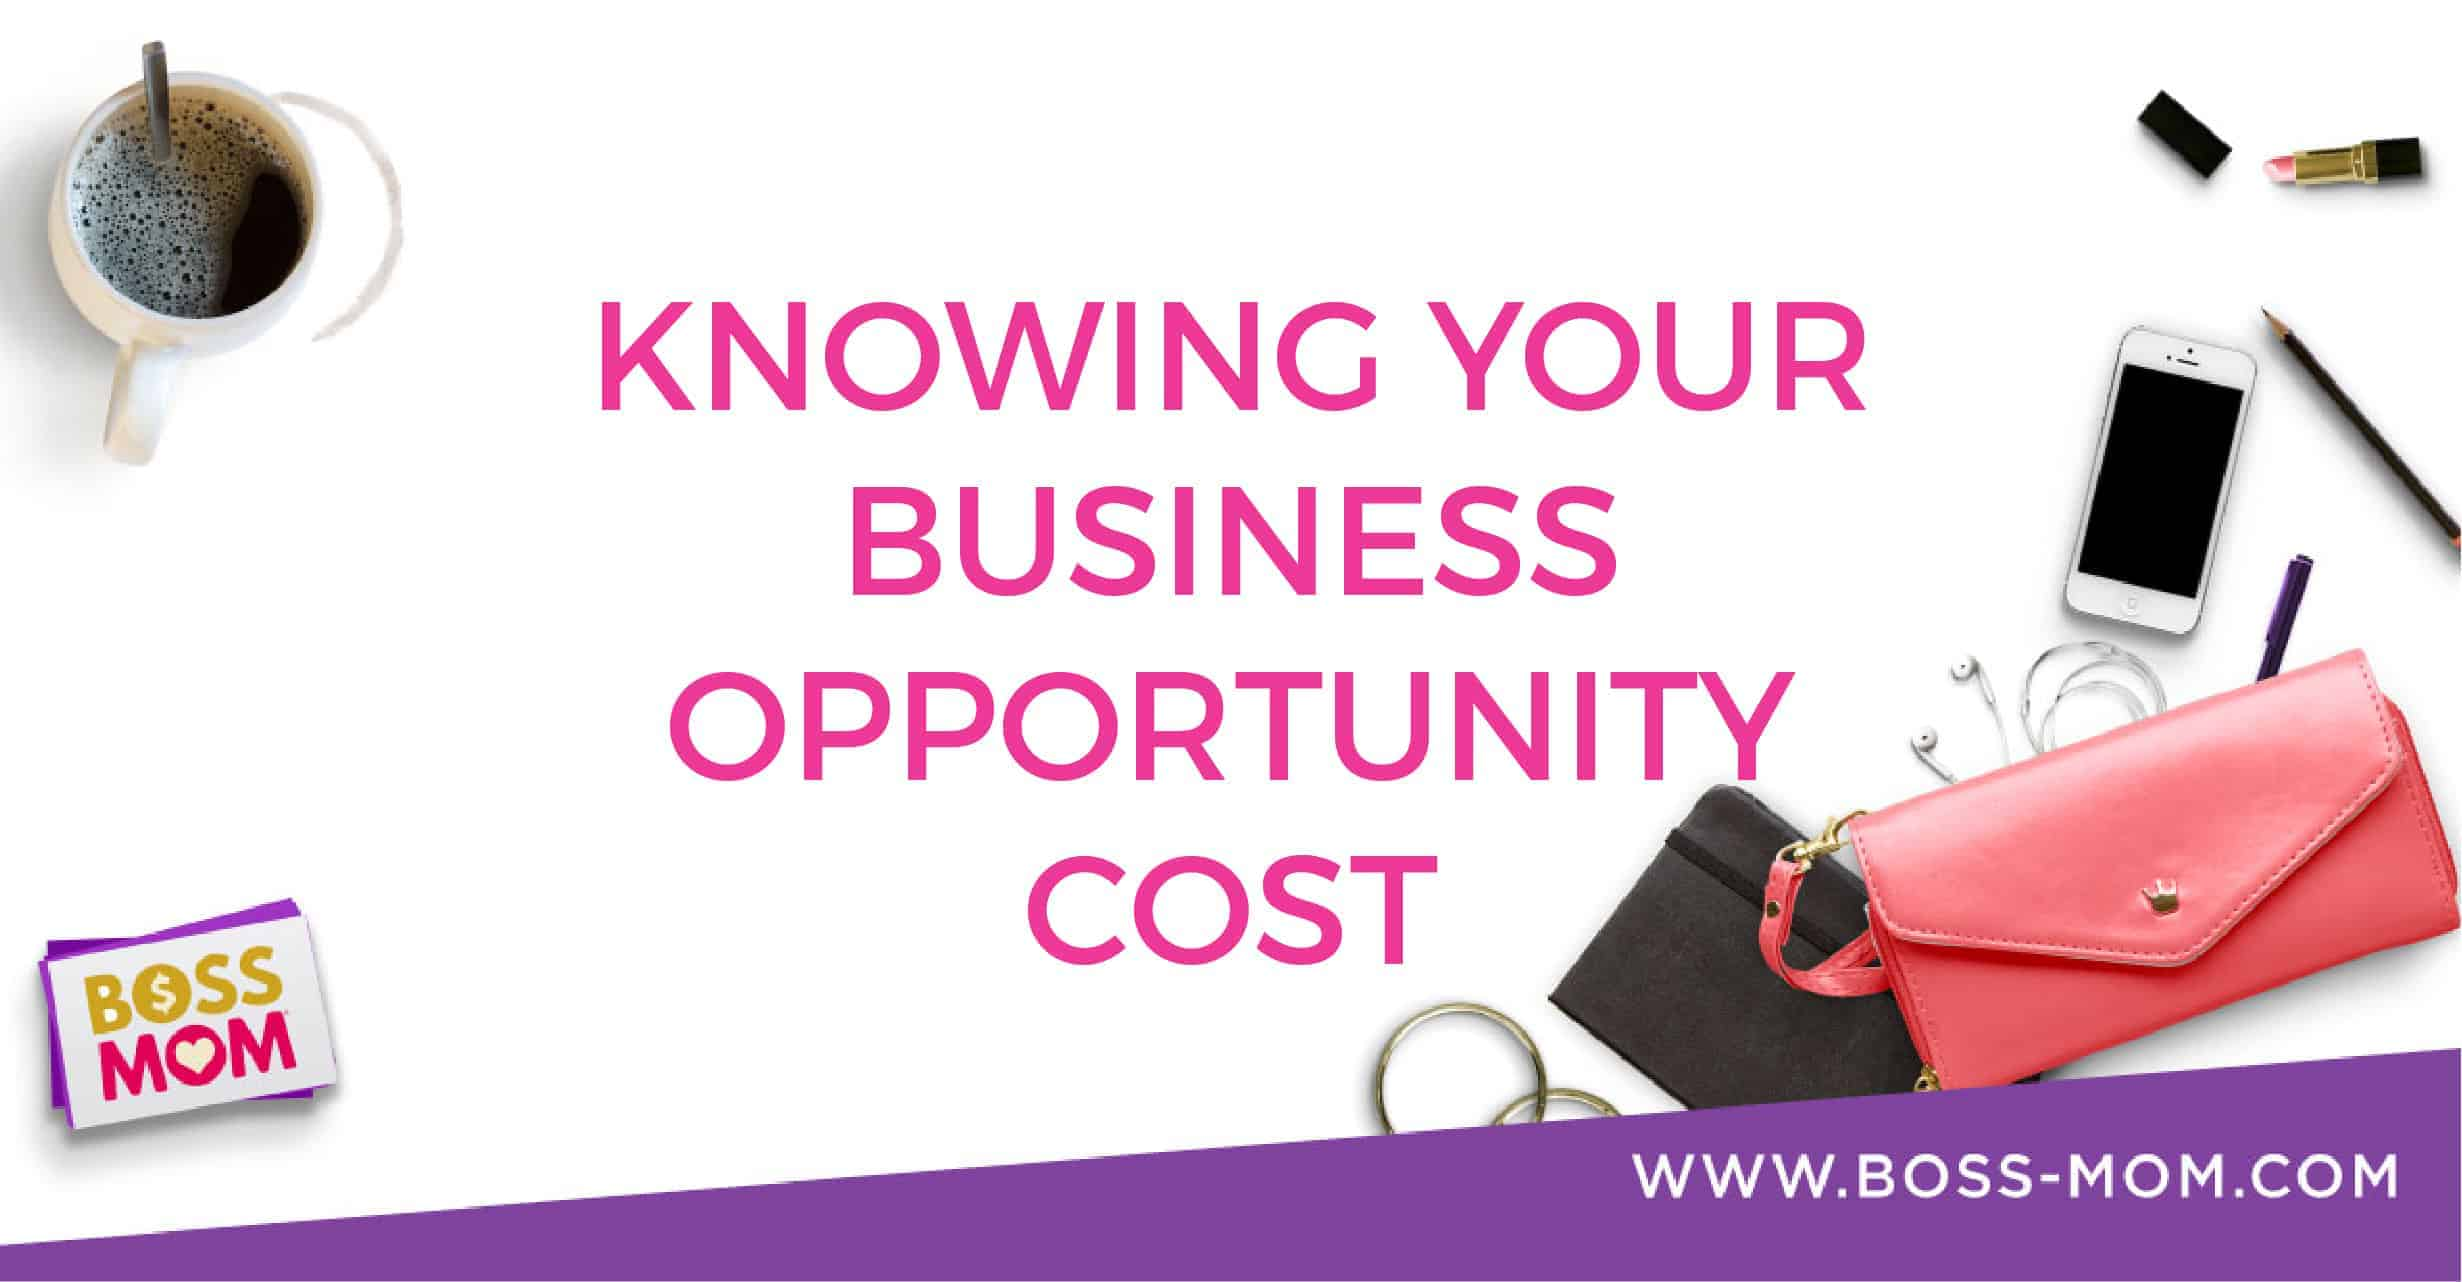 Episode 187: Knowing Your Business Opportunity Cost with Dana